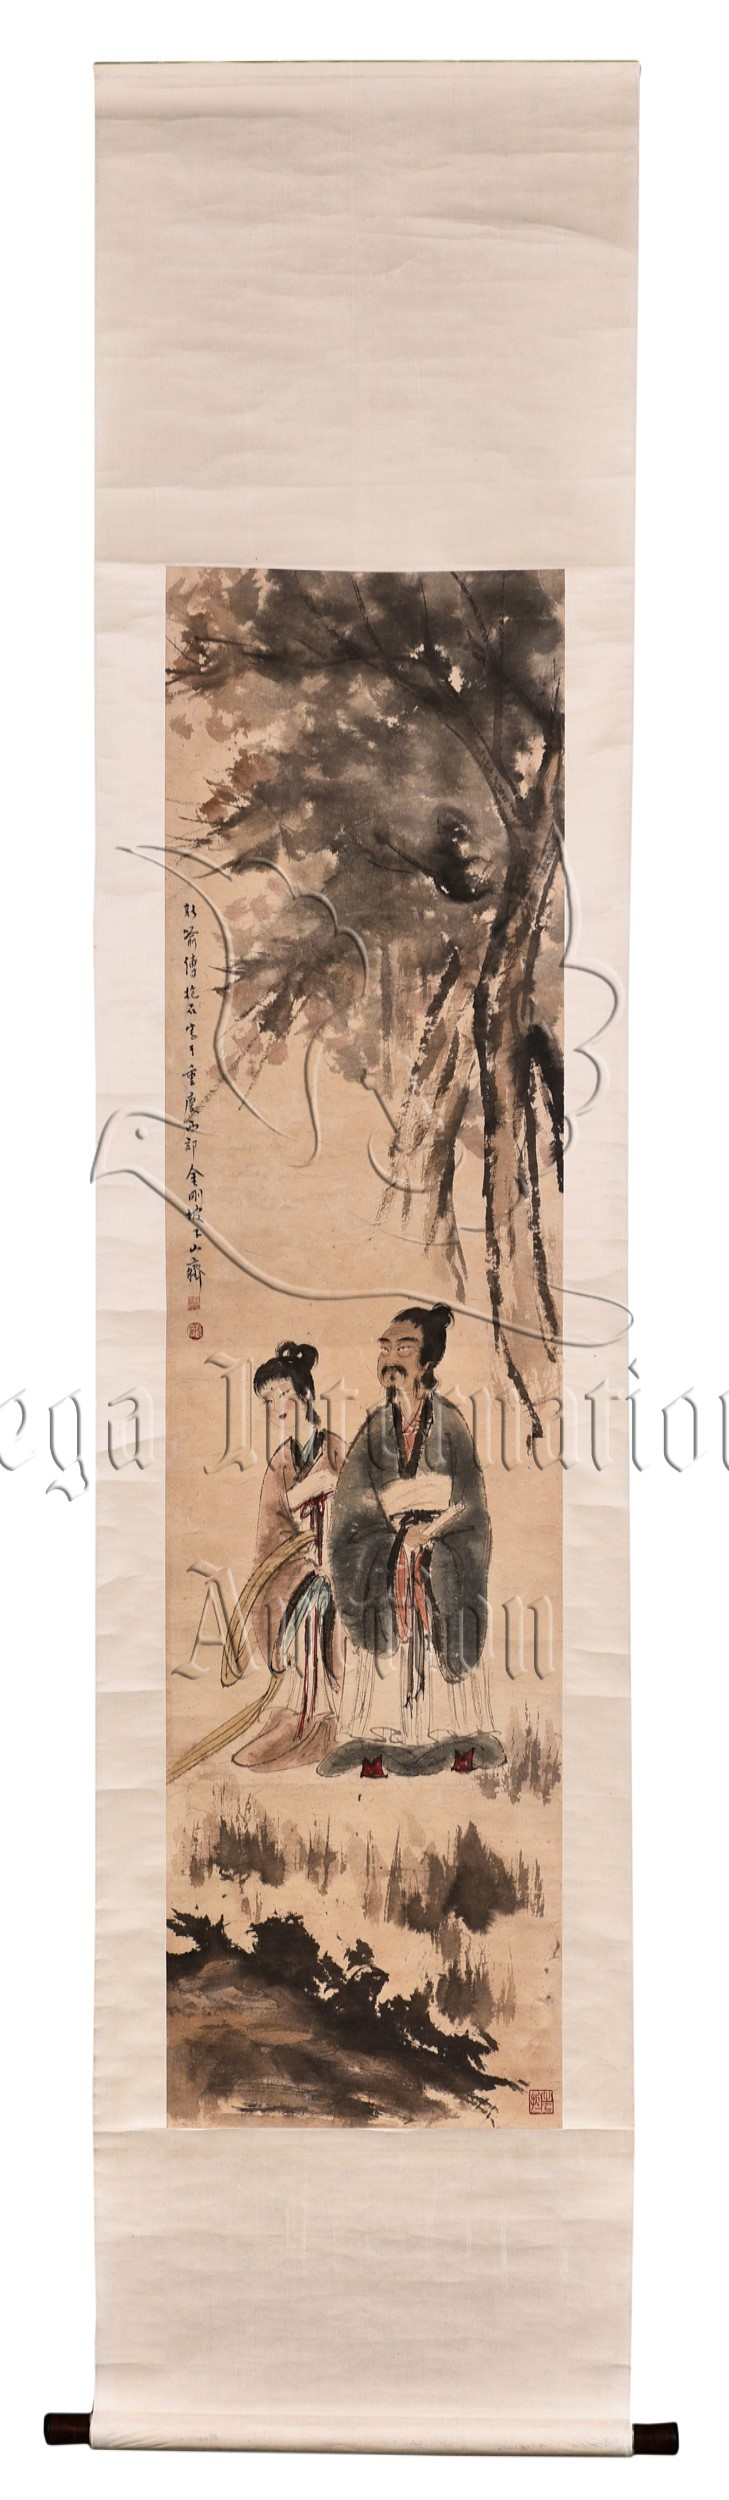 FU BAOSHI: INK AND COLOR ON PAPER 'PEOPLE' PAINTING